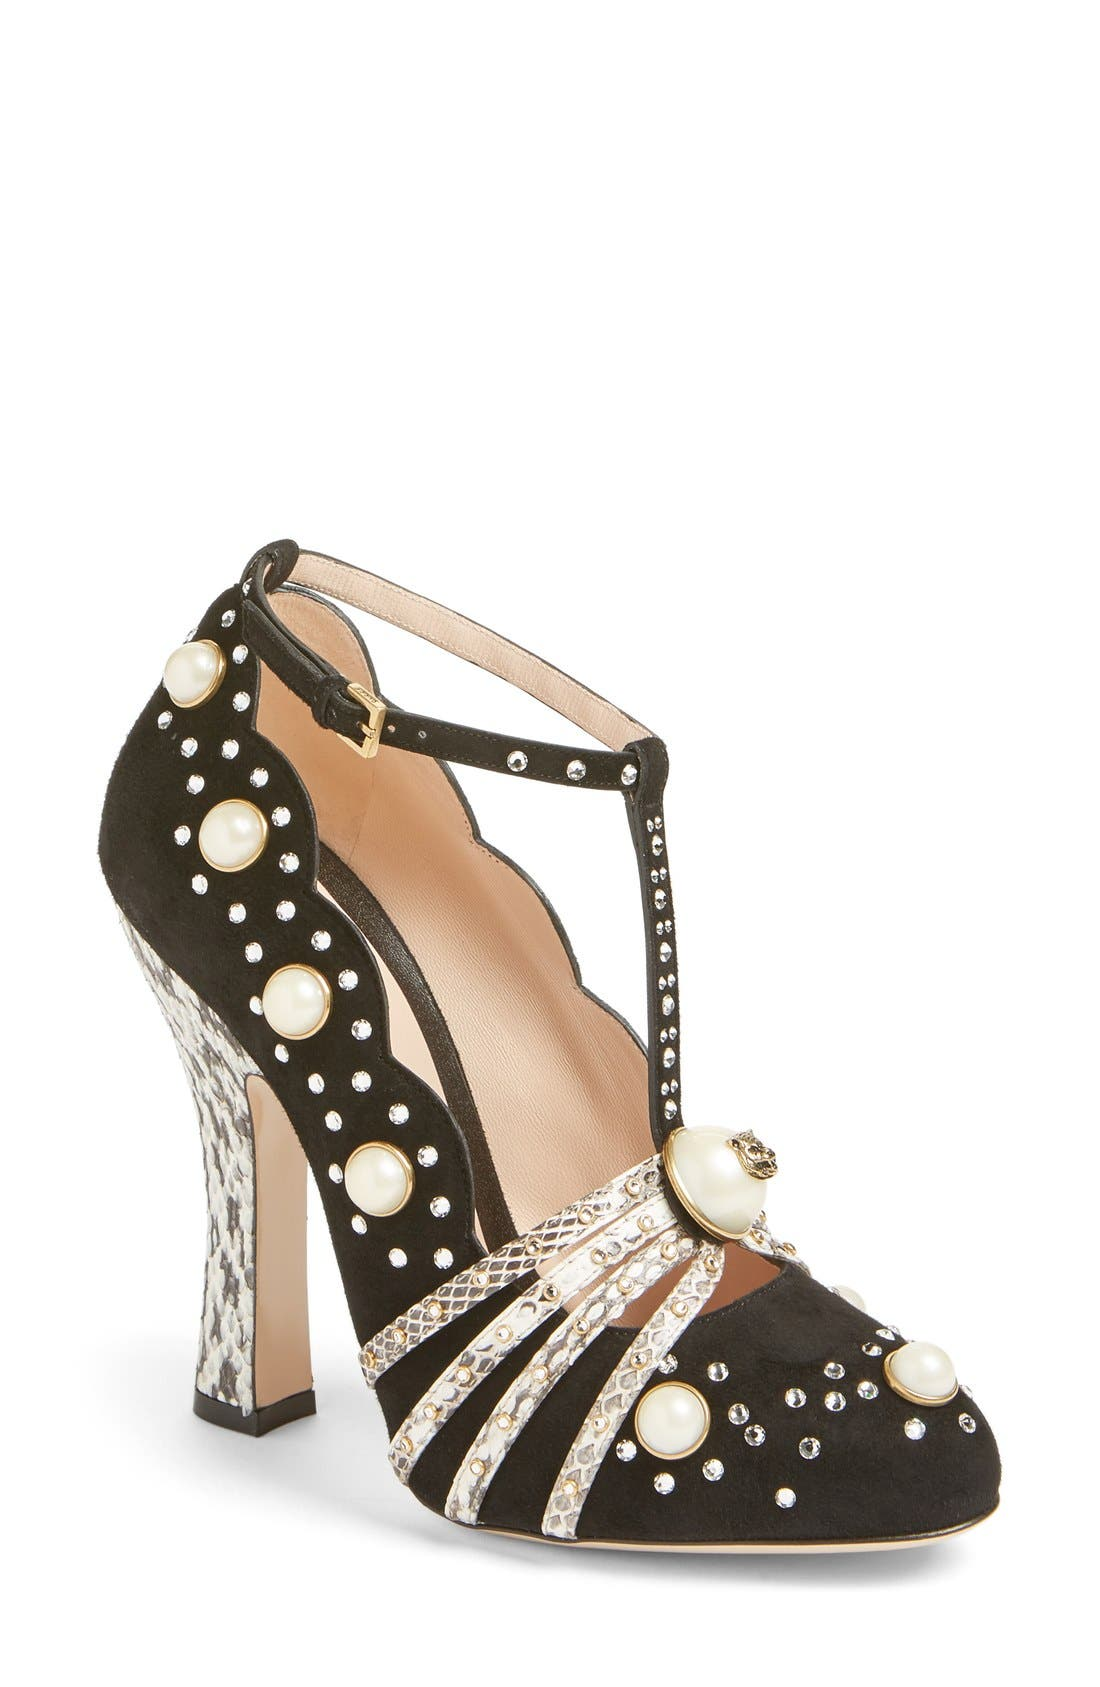 Ofelia Pearly Crystal Embellished Pump,                             Main thumbnail 1, color,                             Black